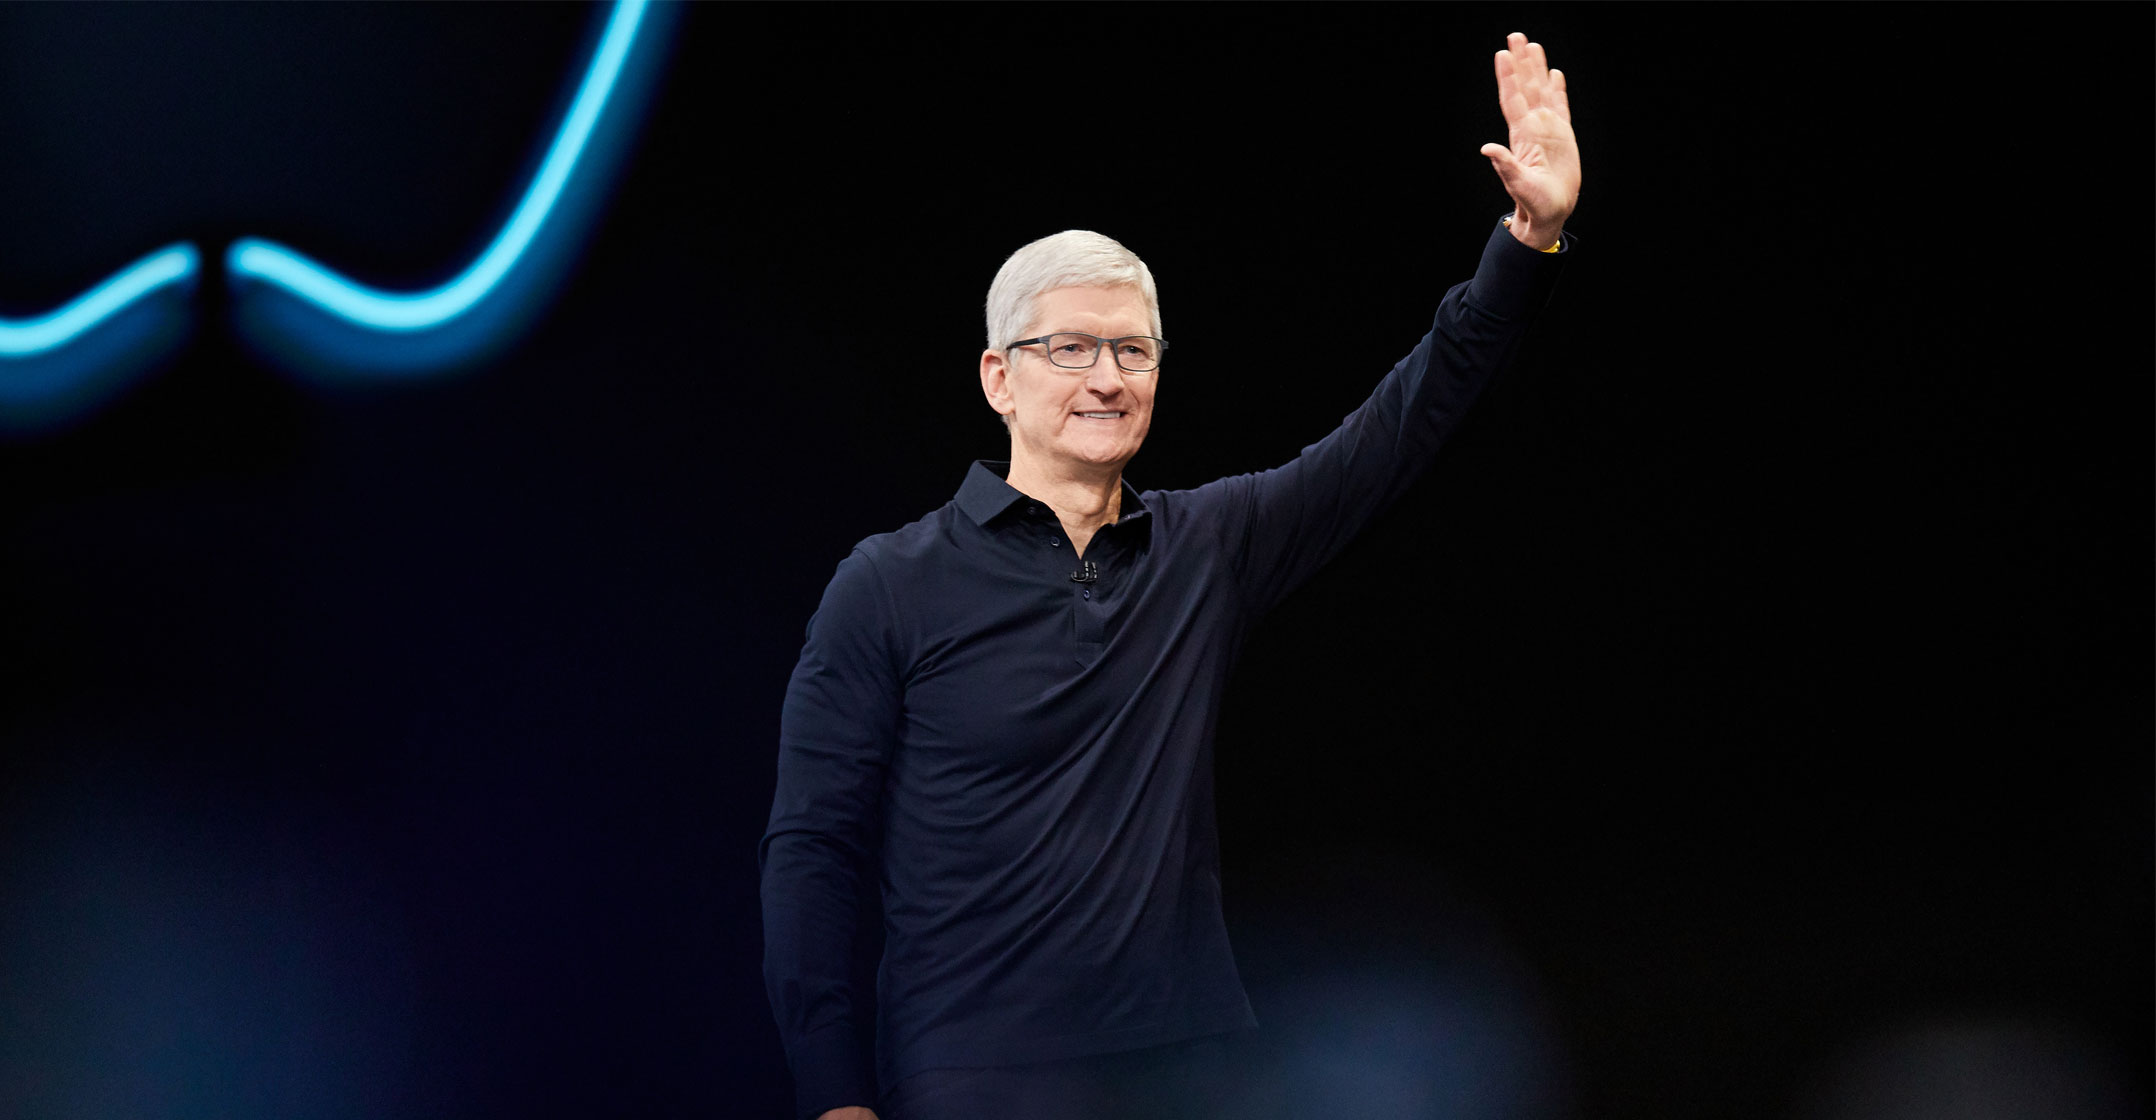 Game makers give Apple the antitrust grilling lawmakers didn't - TechCentral